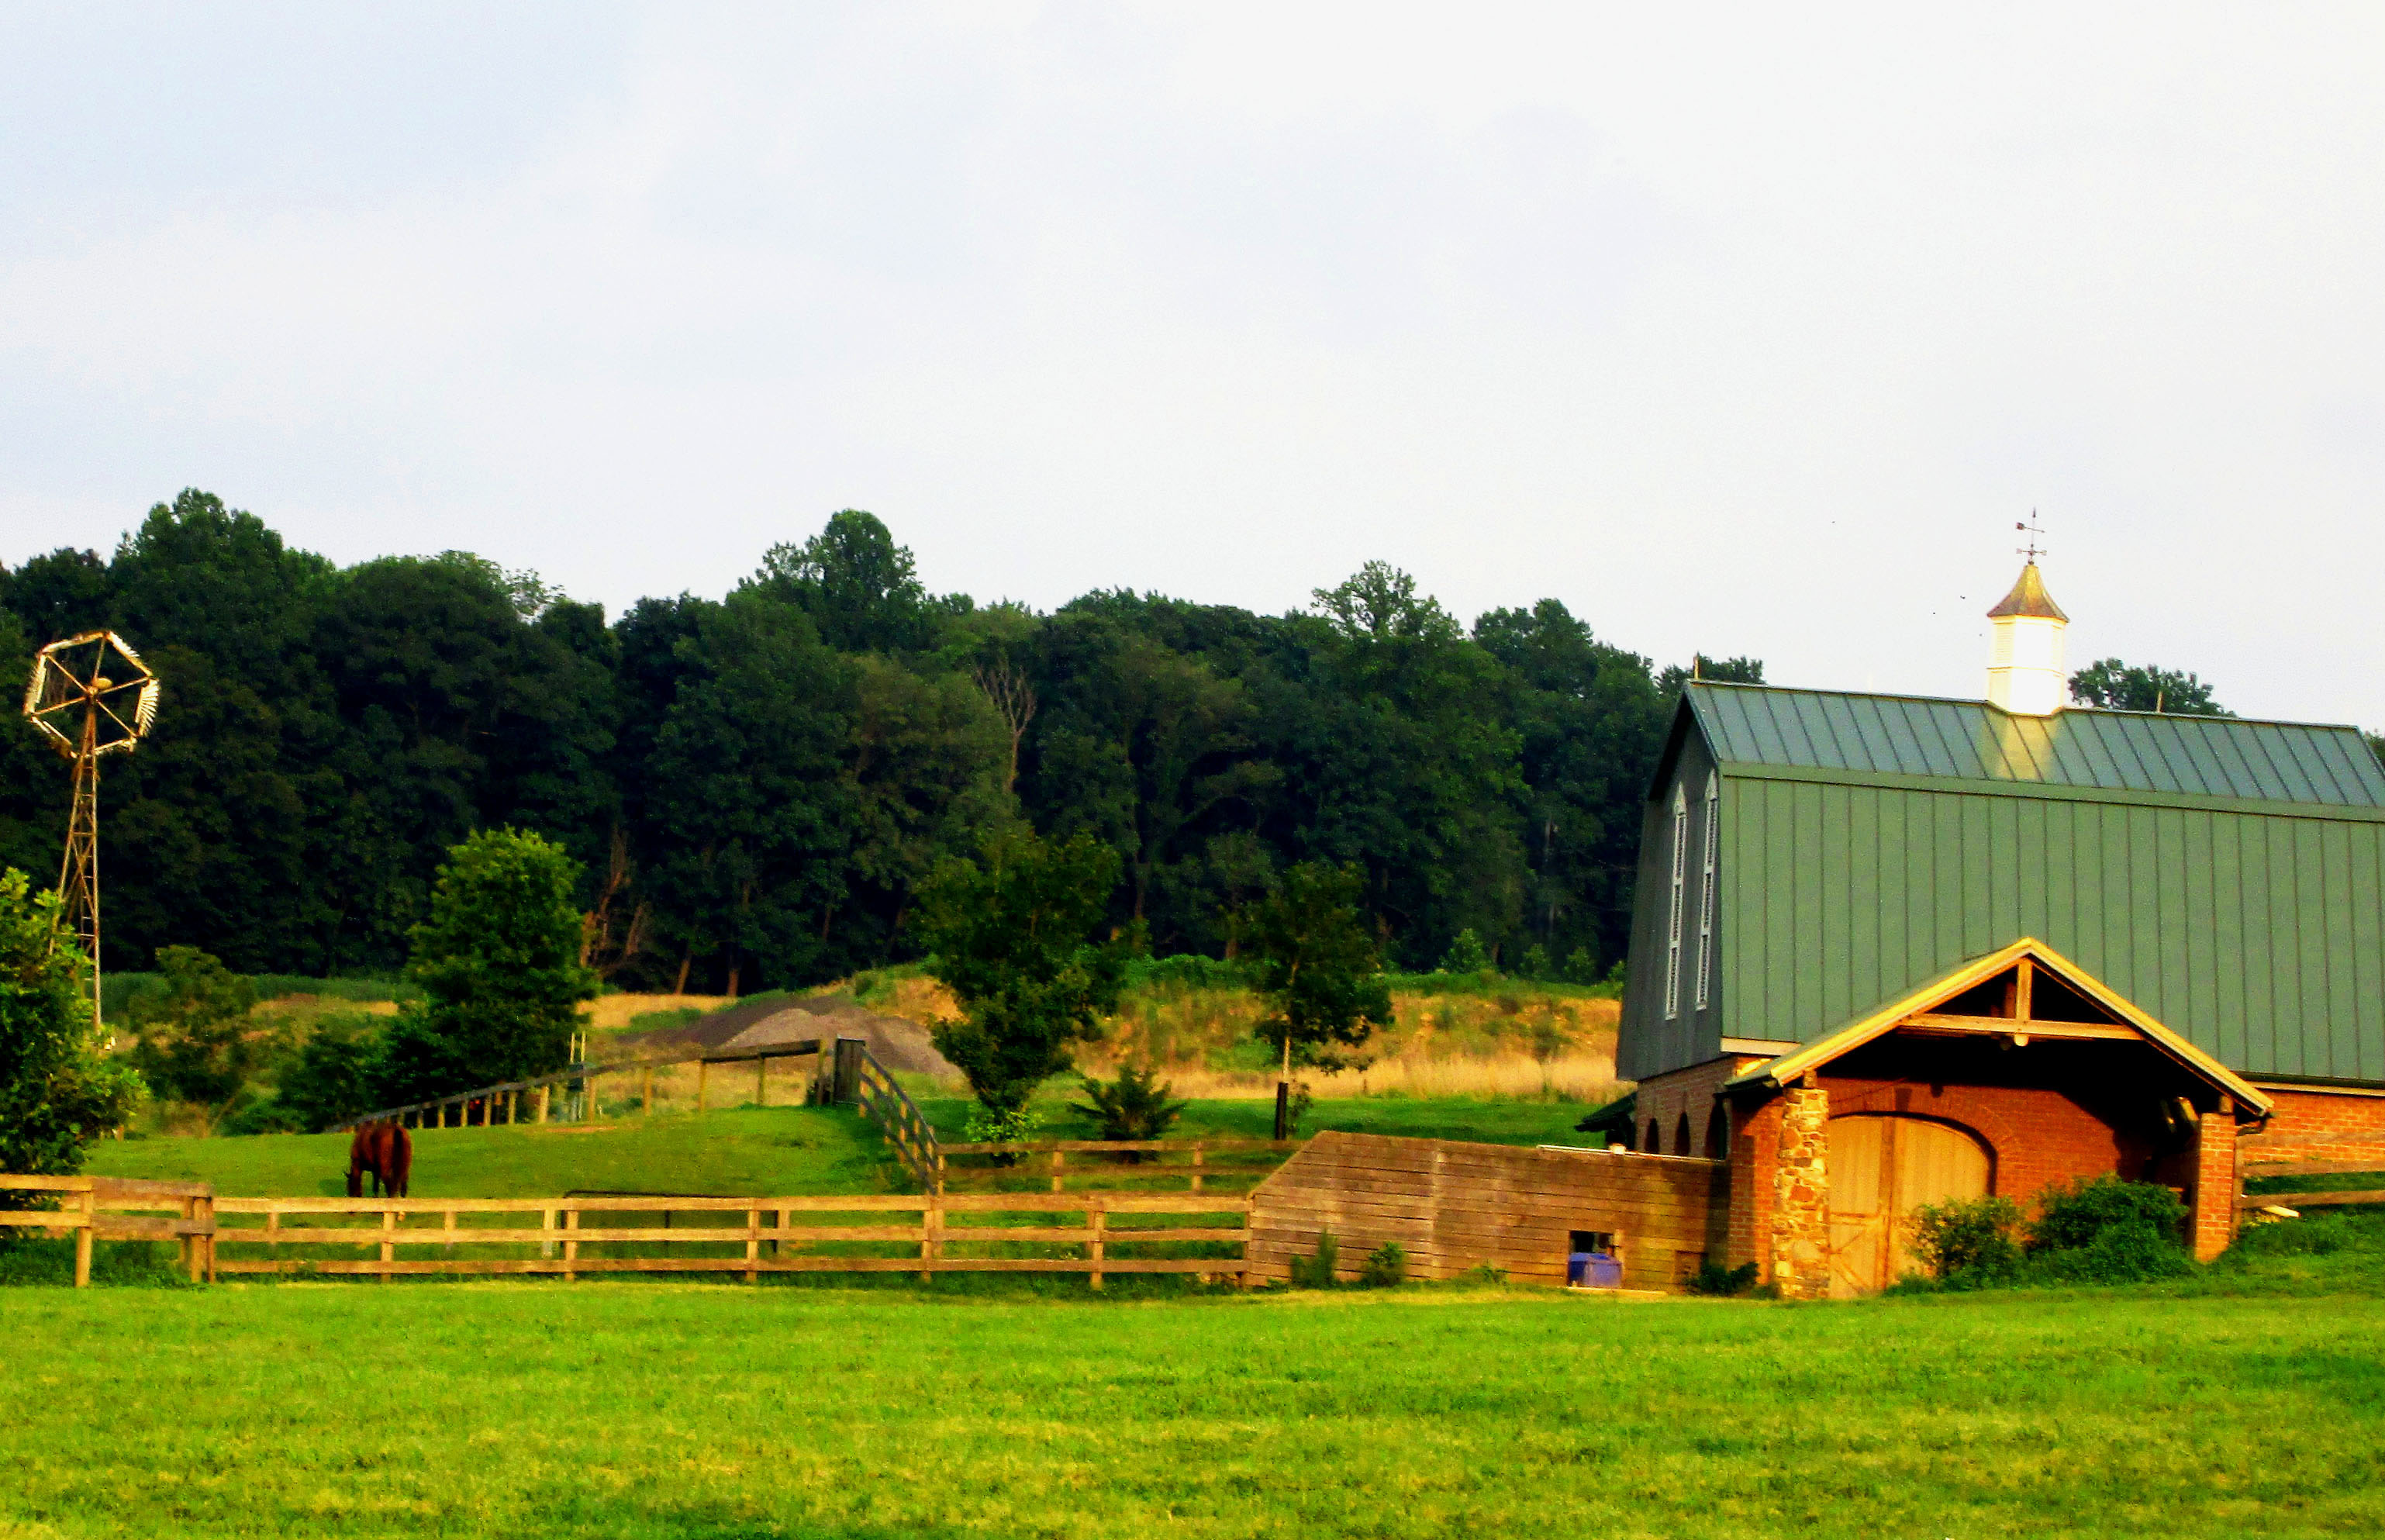 A Chester County Horse Farm